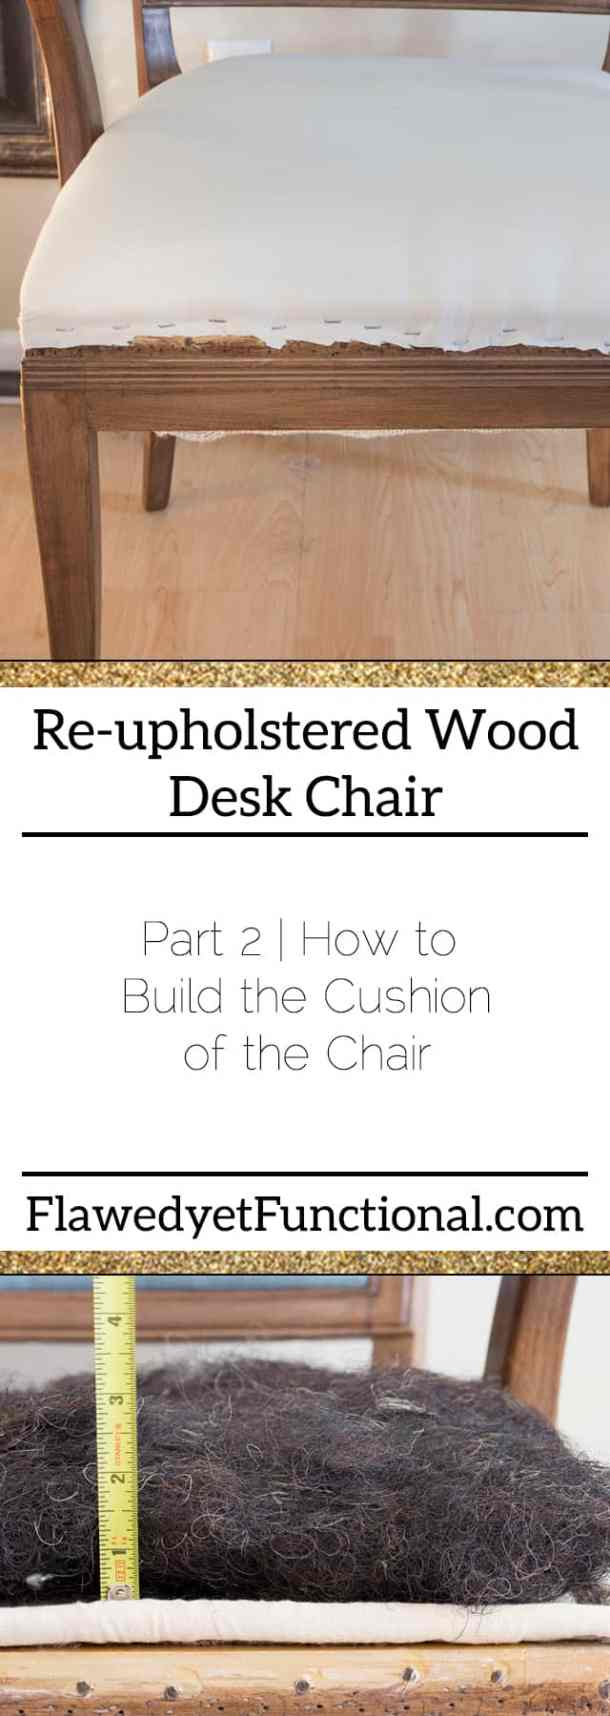 Build the Cushion Upholstery